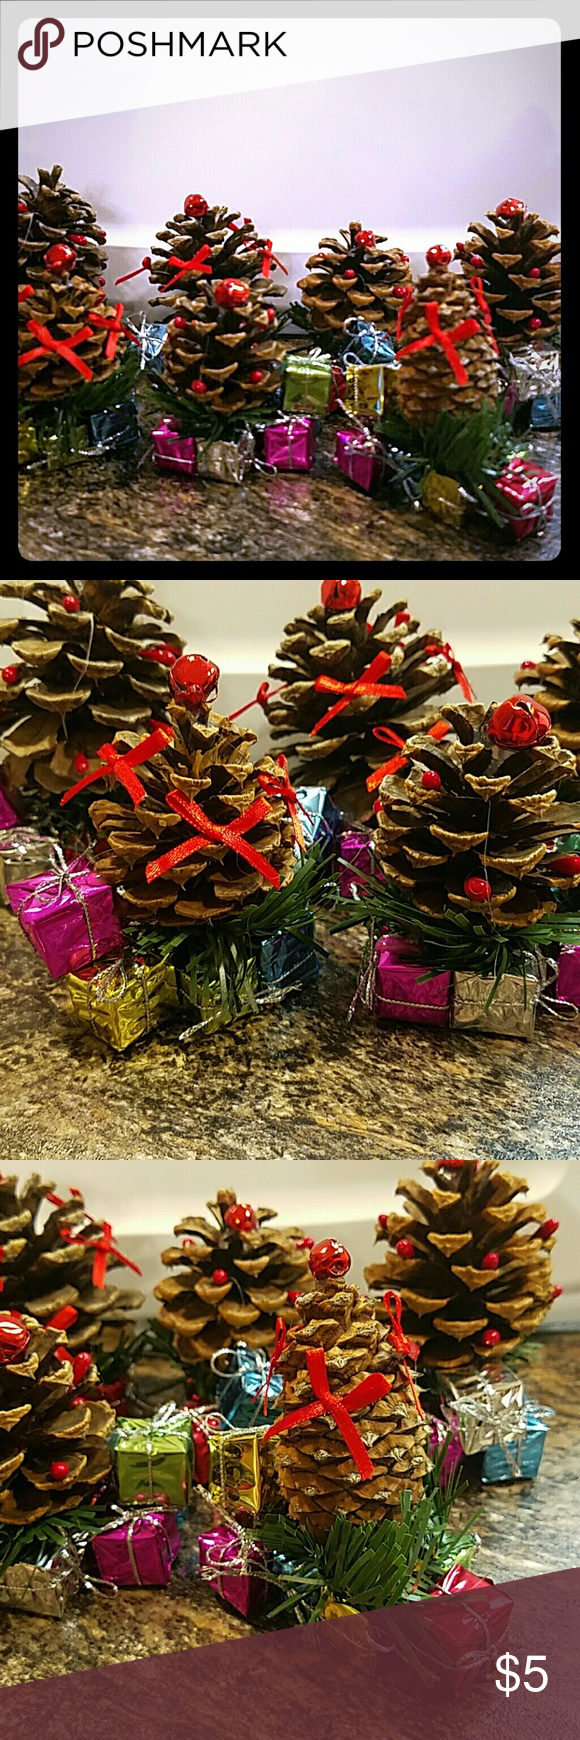 Christmas Decor Pine cones with festive present decor. Great party decor, or holiday trimming! Set of 7 Other